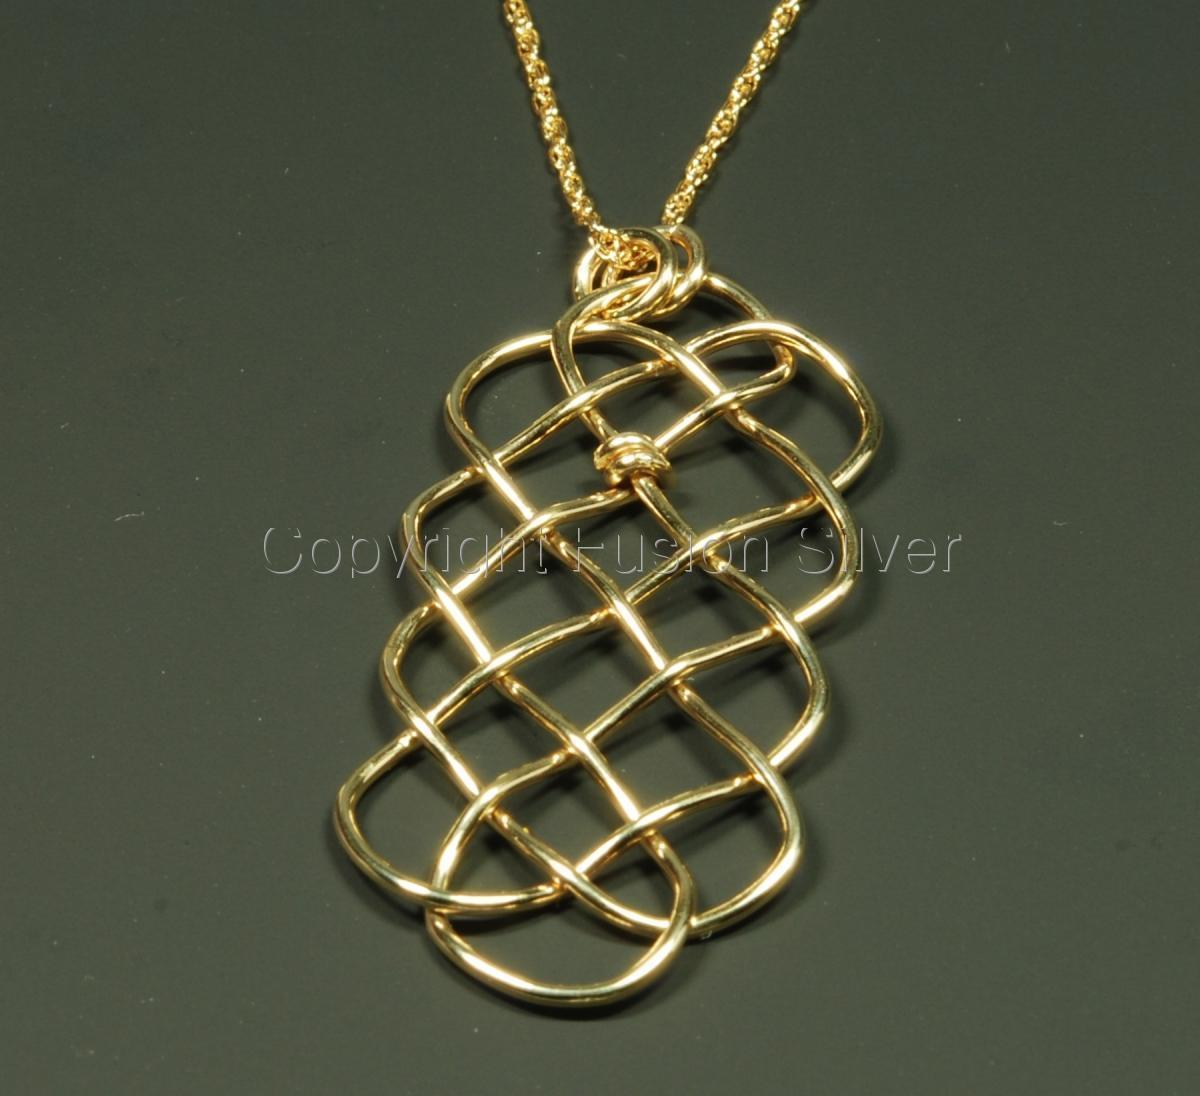 Gold filled Prolong Knot Pendant (large view)